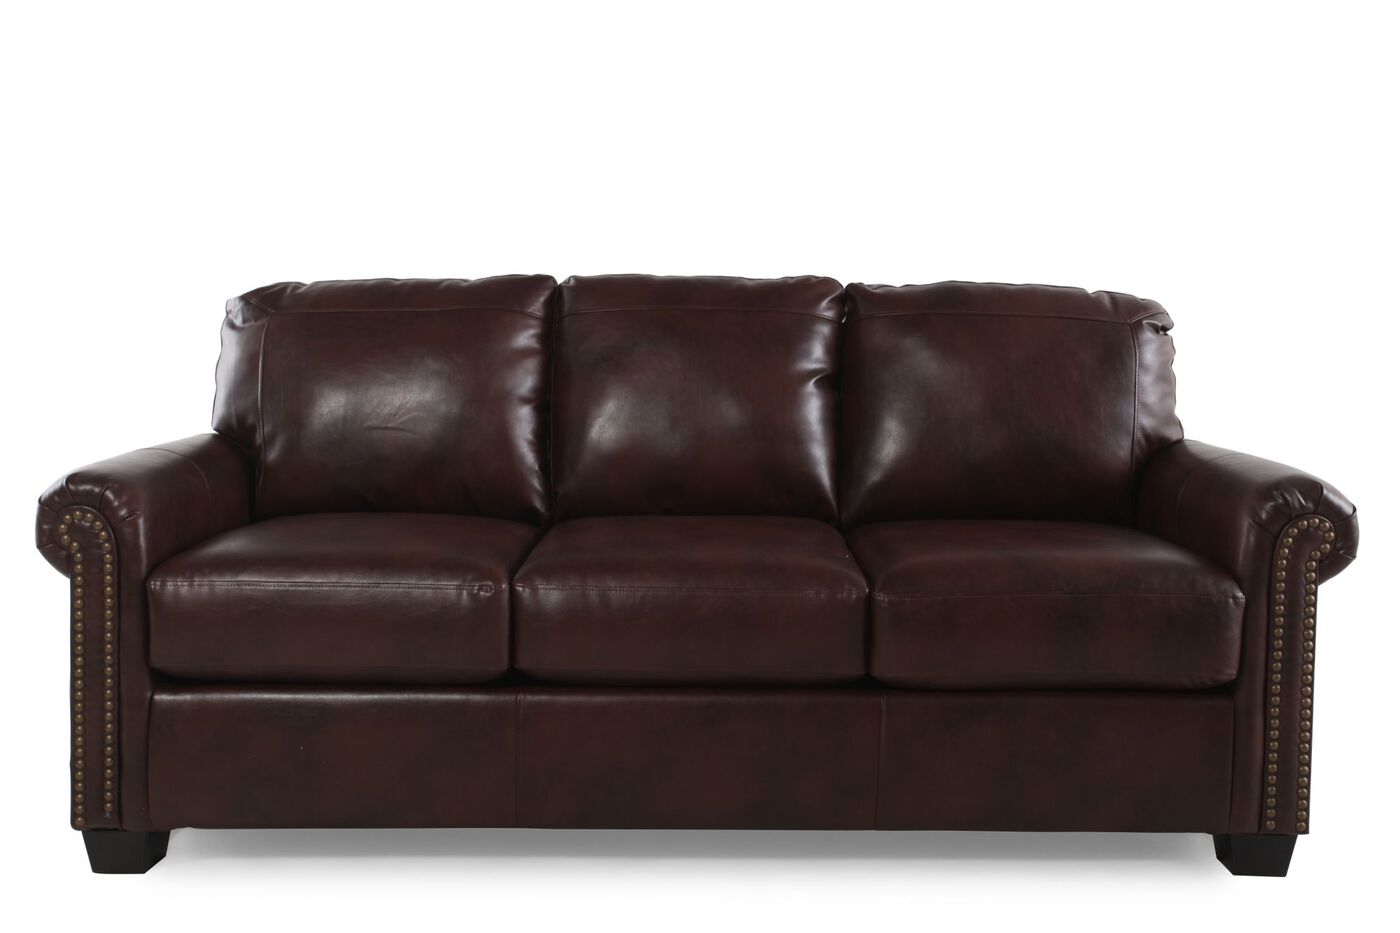 Rolled Arm Contemporary 83 Queen Sleeper Sofa In Chocolate Mathis Brothers Furniture